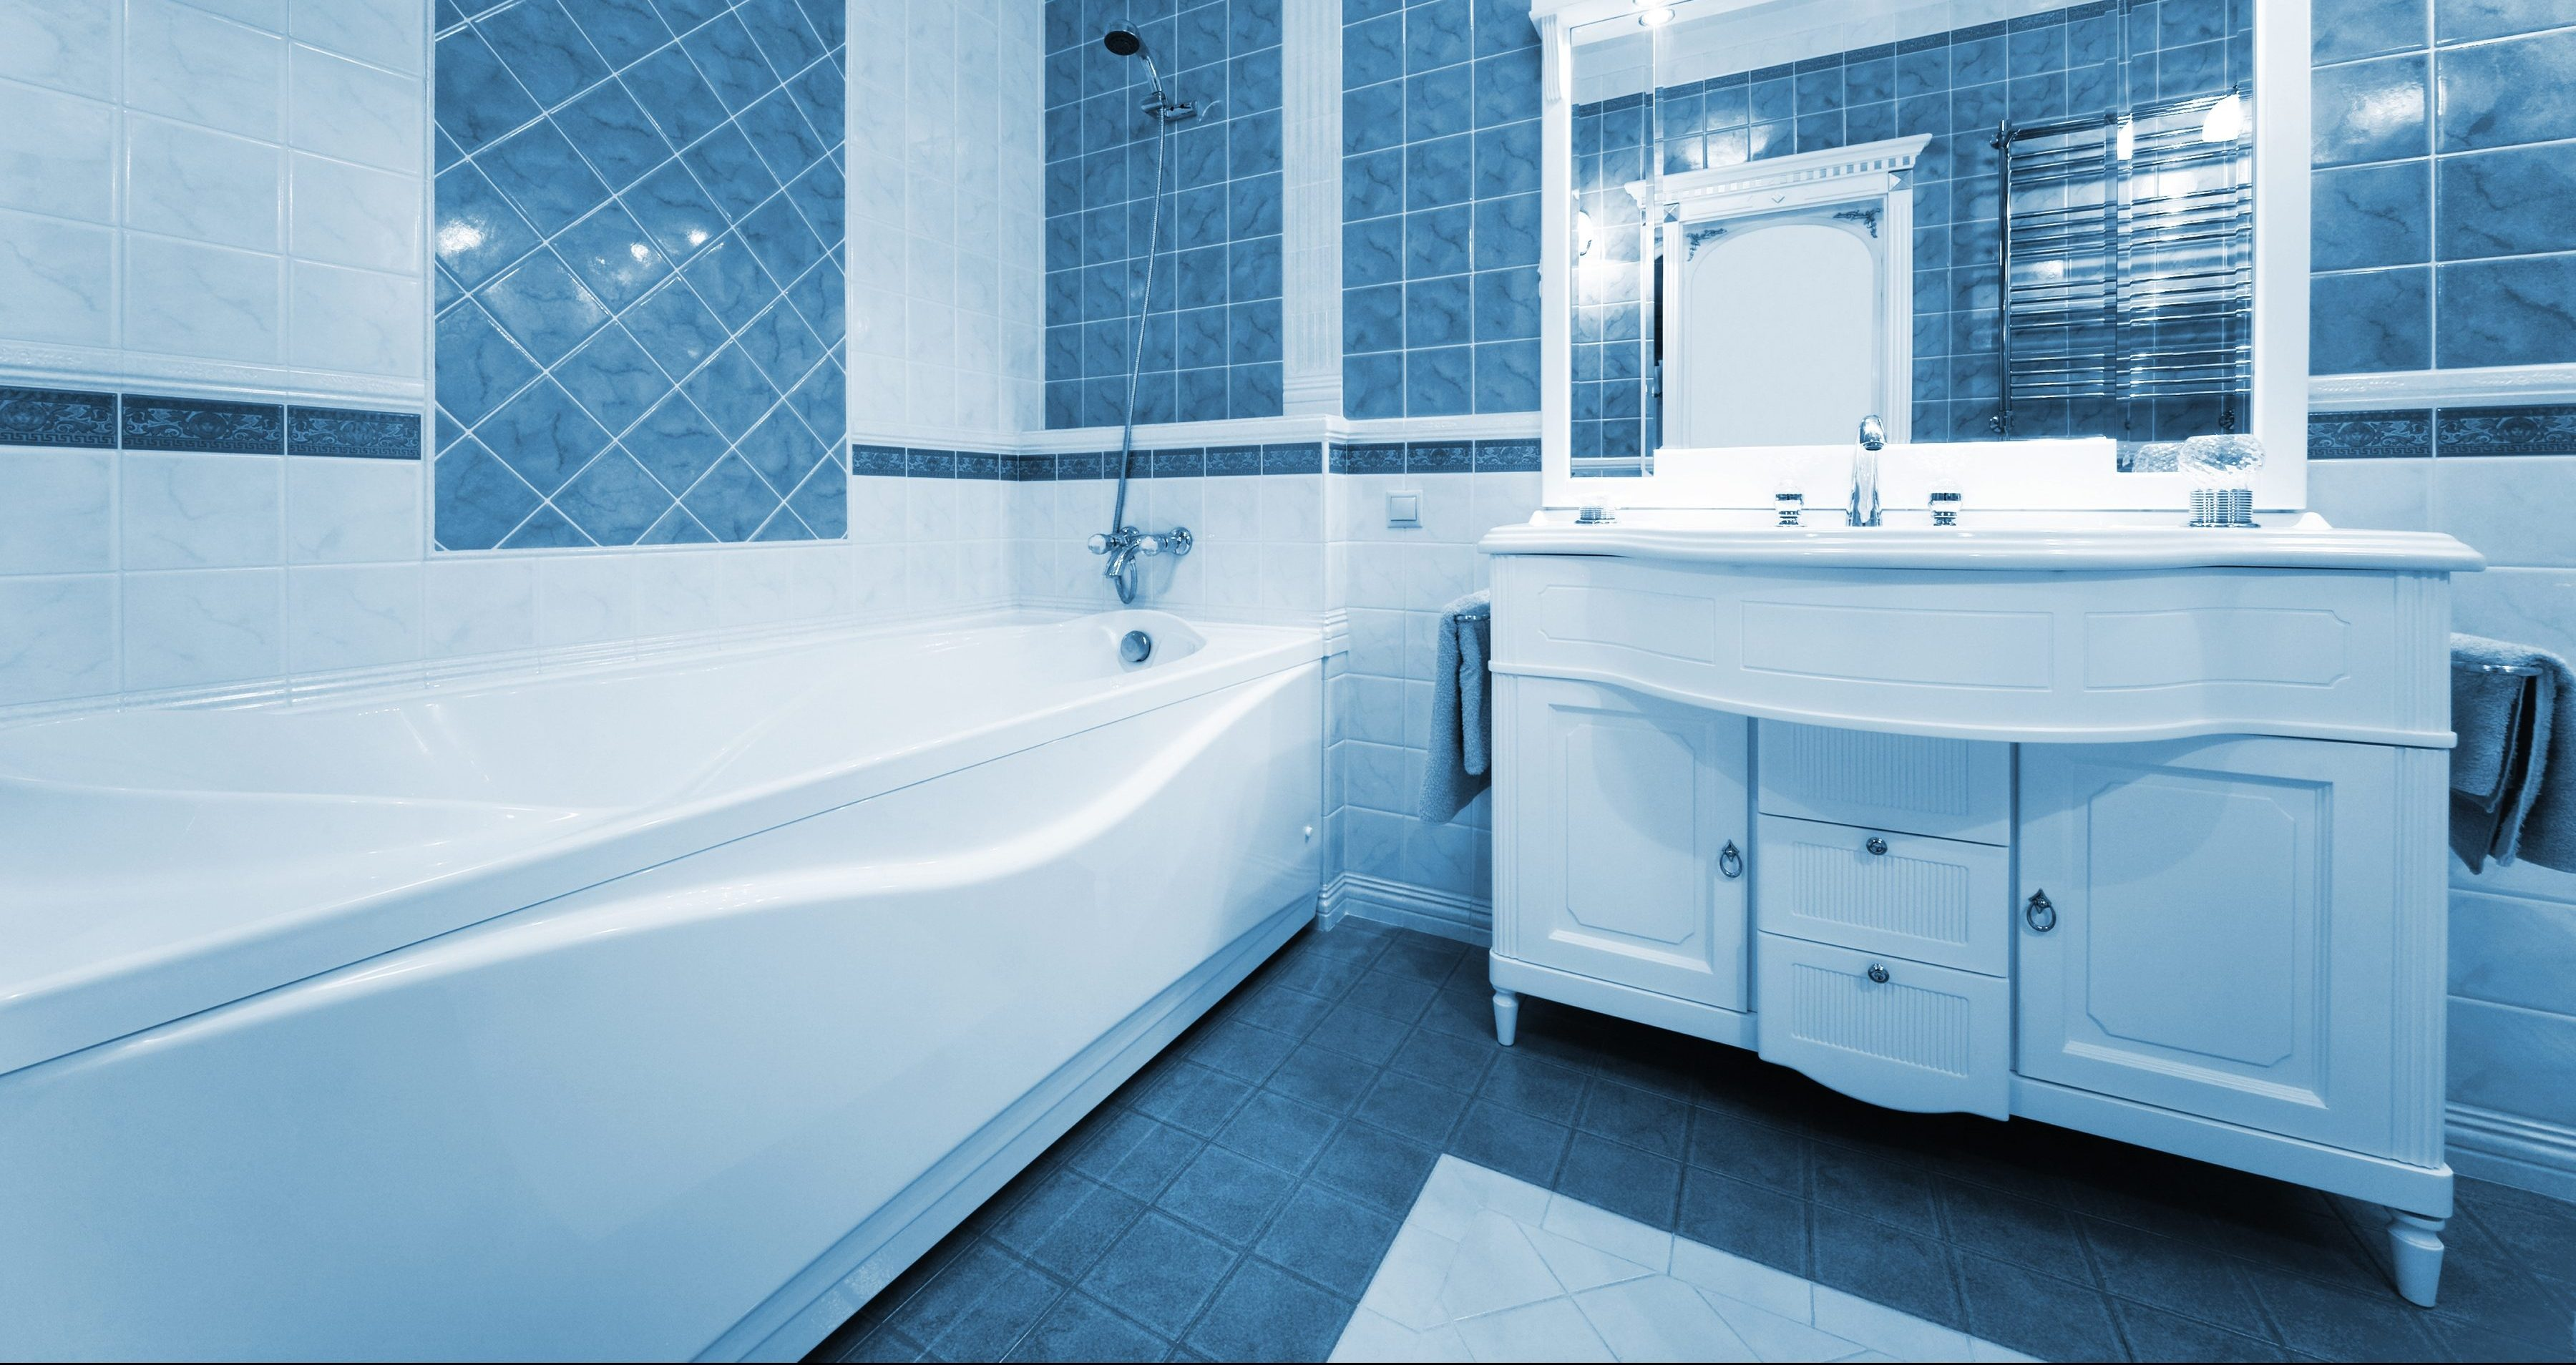 Do You Need Bathtub Repair or Bathtub Replacement? | Weilhammer ...